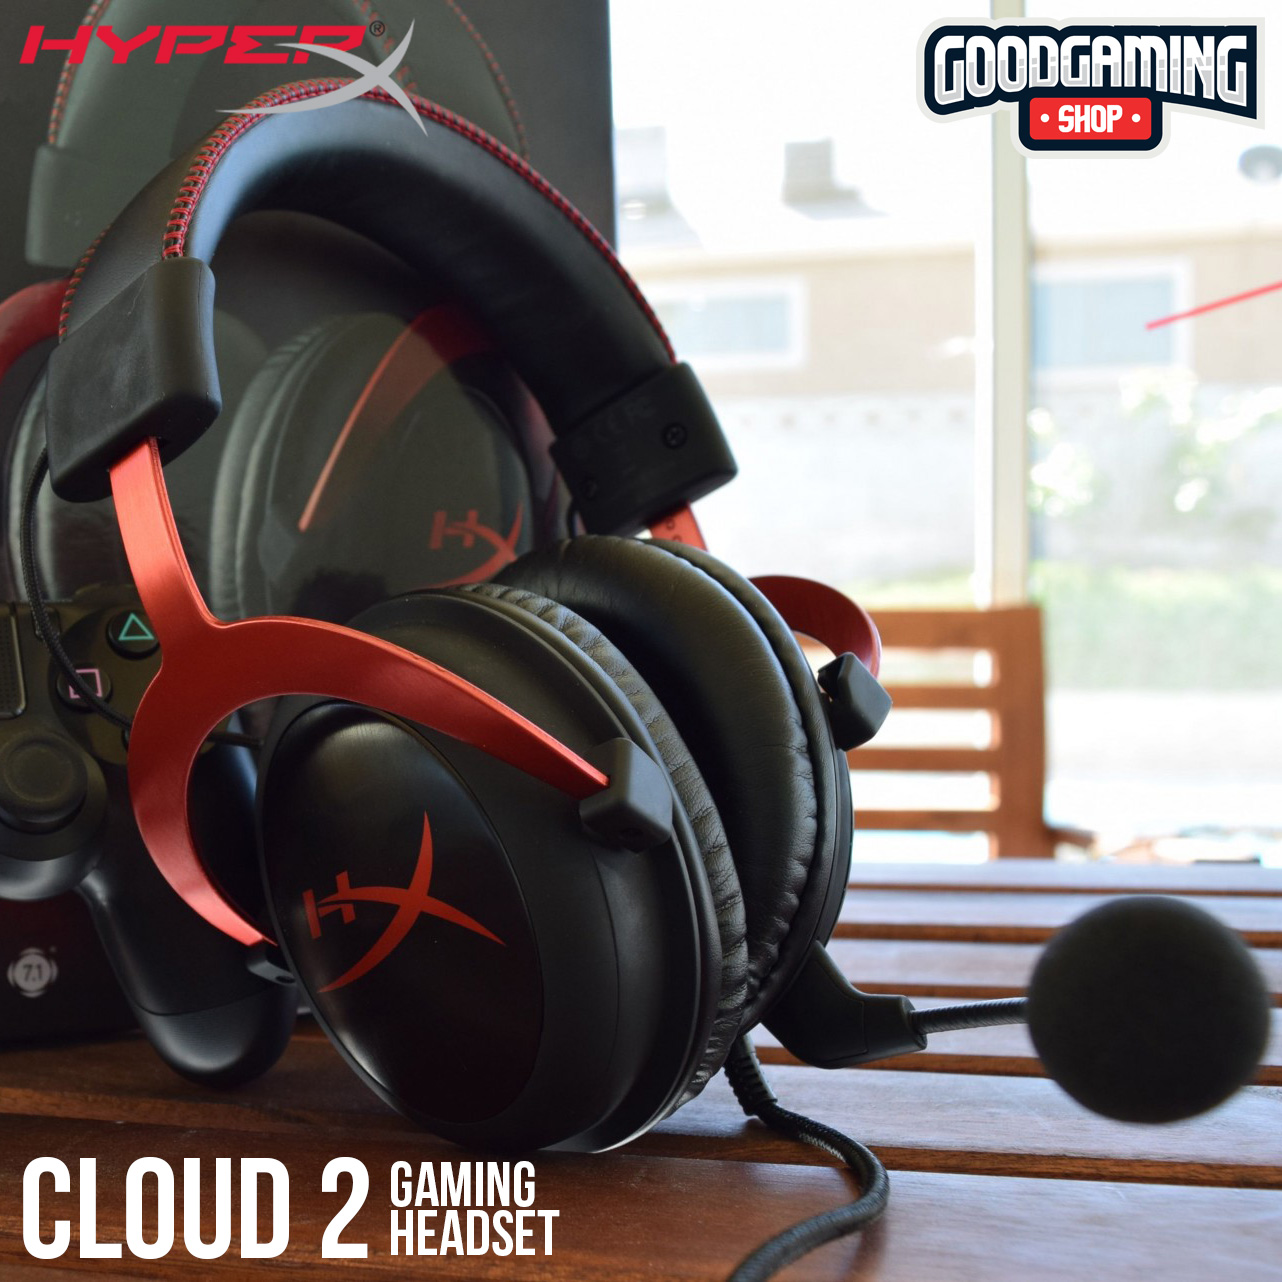 Hyperx Cloud 2 Good Gaming Shop Sound Quality Headset Two Output